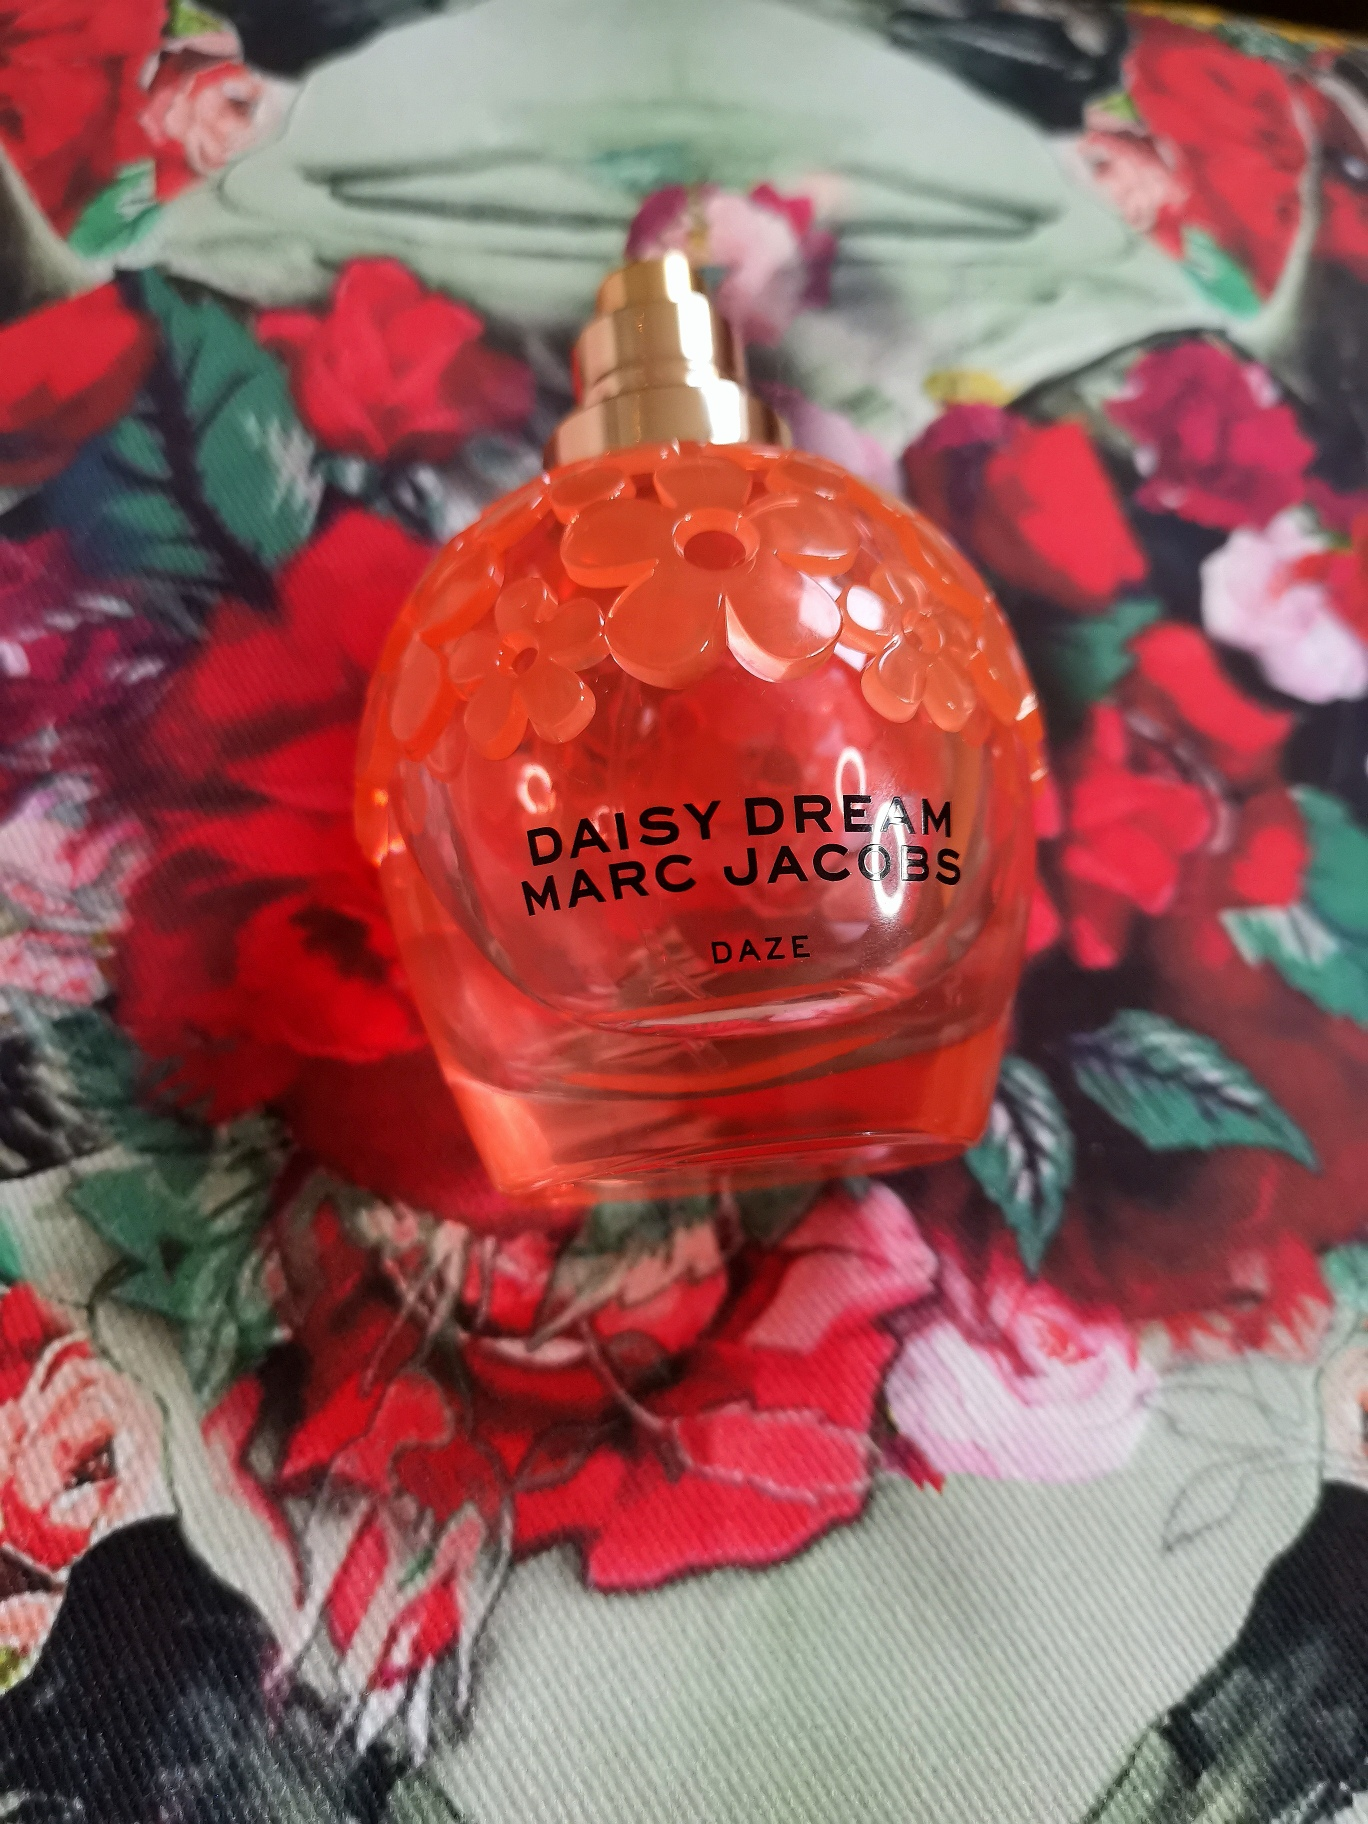 Daisy Dream Daze Limited EditionFragrance Friday Love to Marc Jacobs